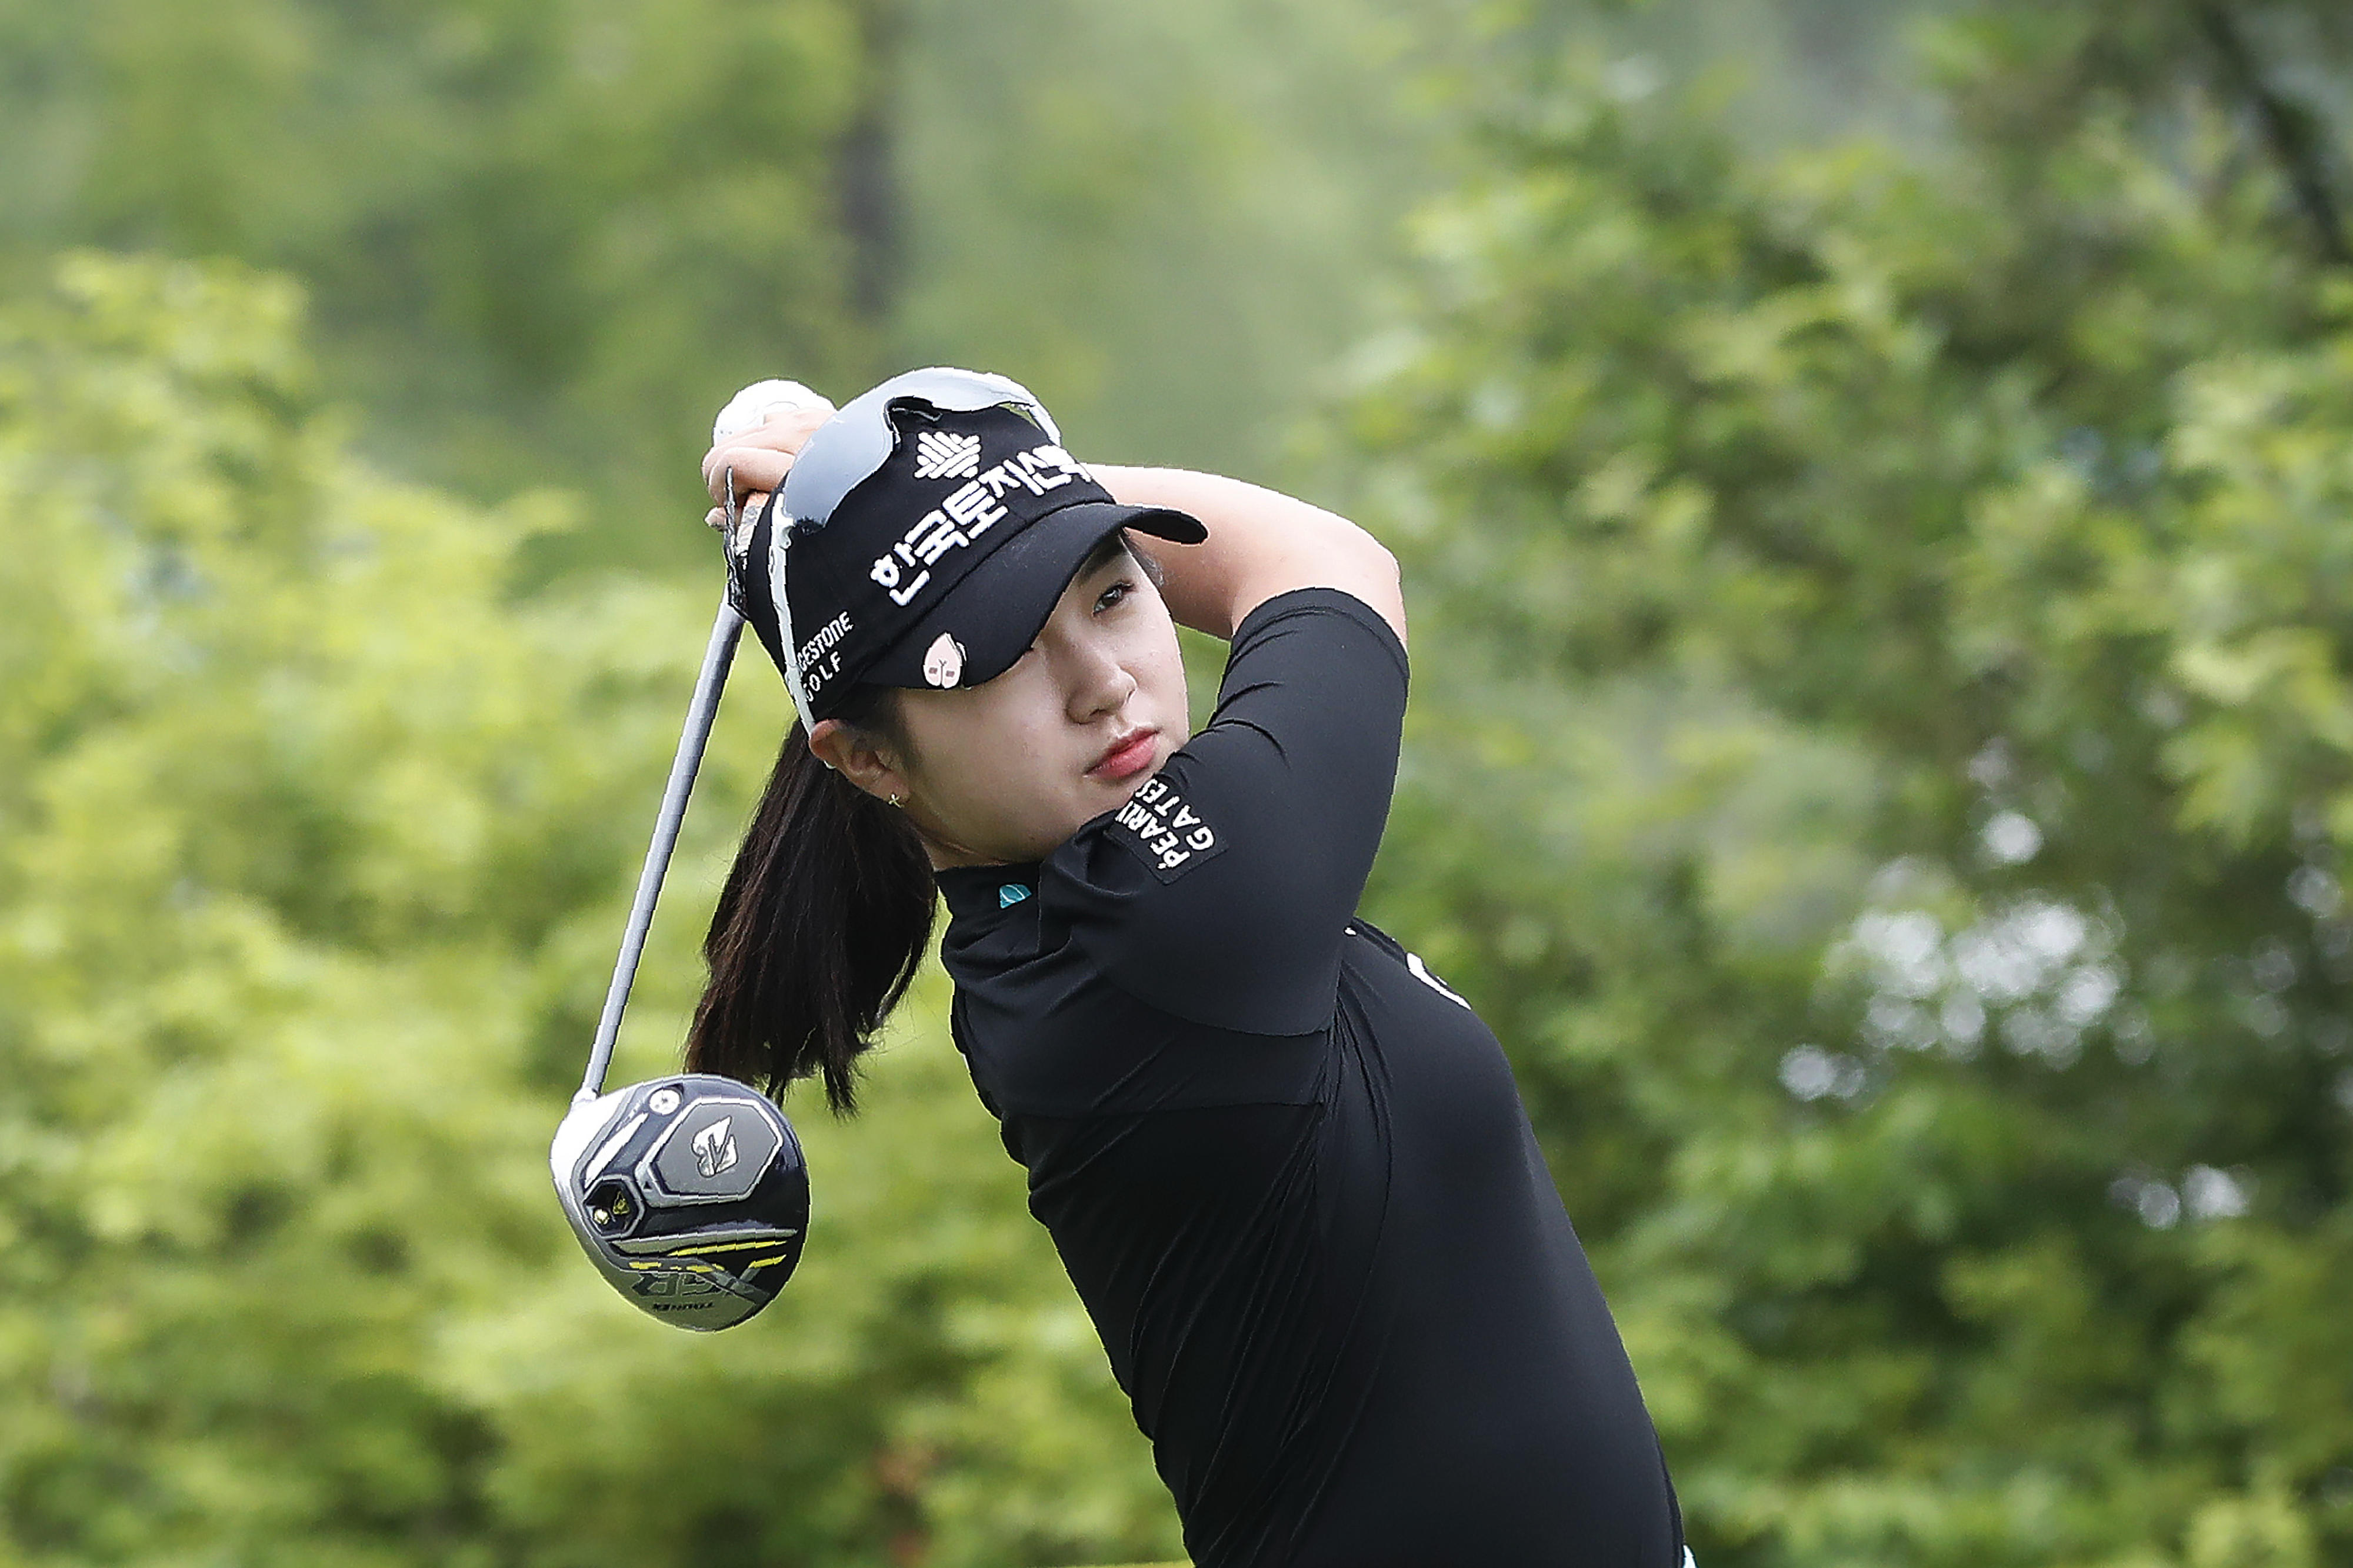 park triumphs in golf s return to action in south korea